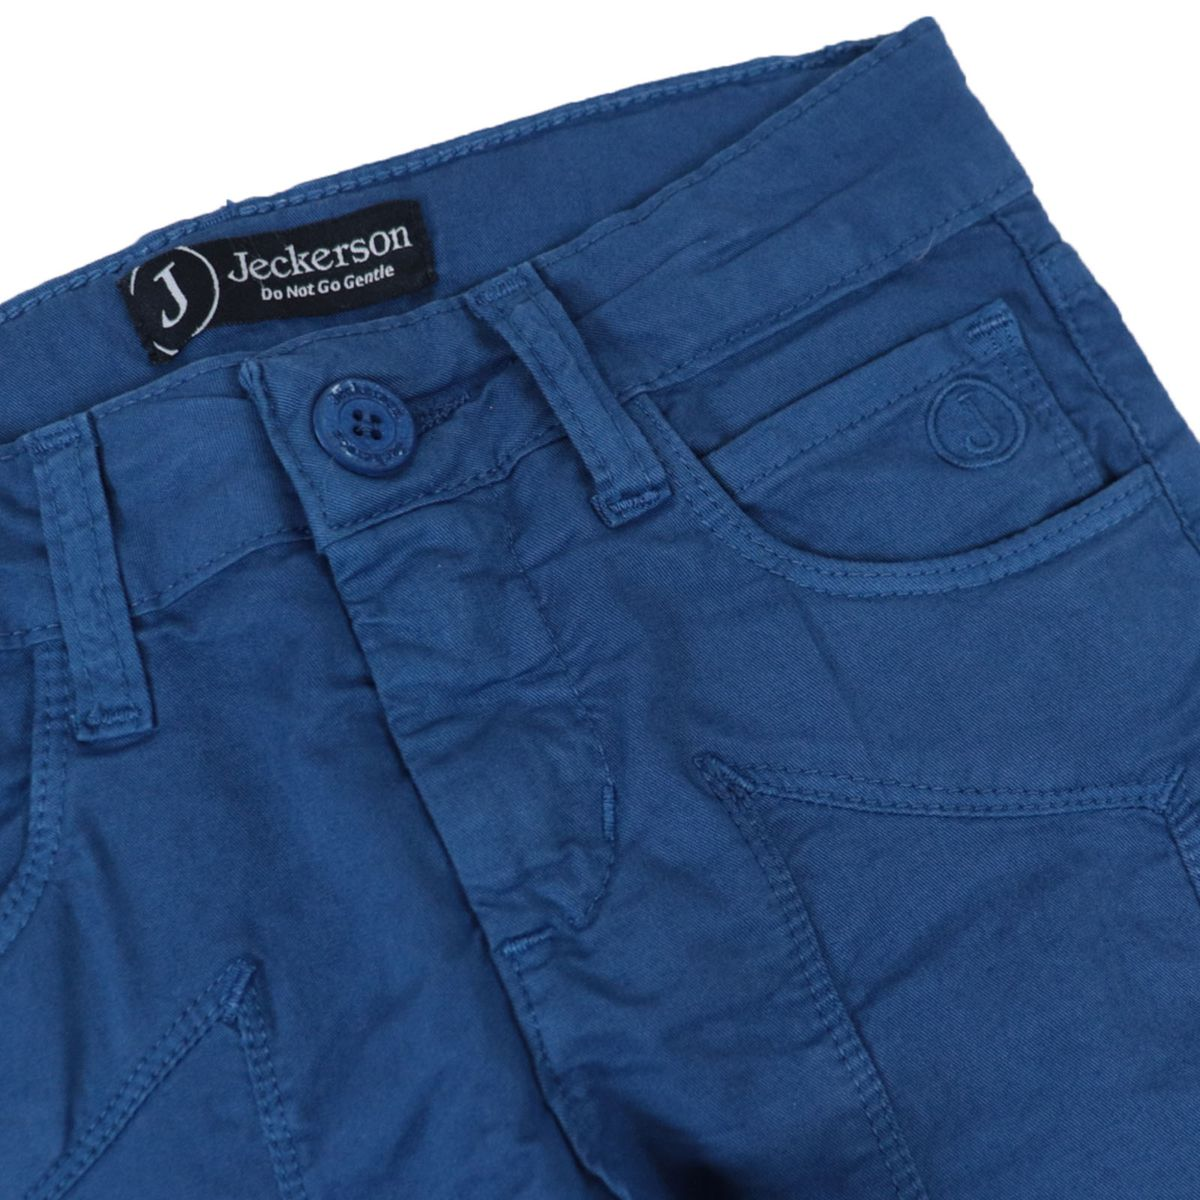 Gabardine bermuda with matching patch Royal Jeckerson